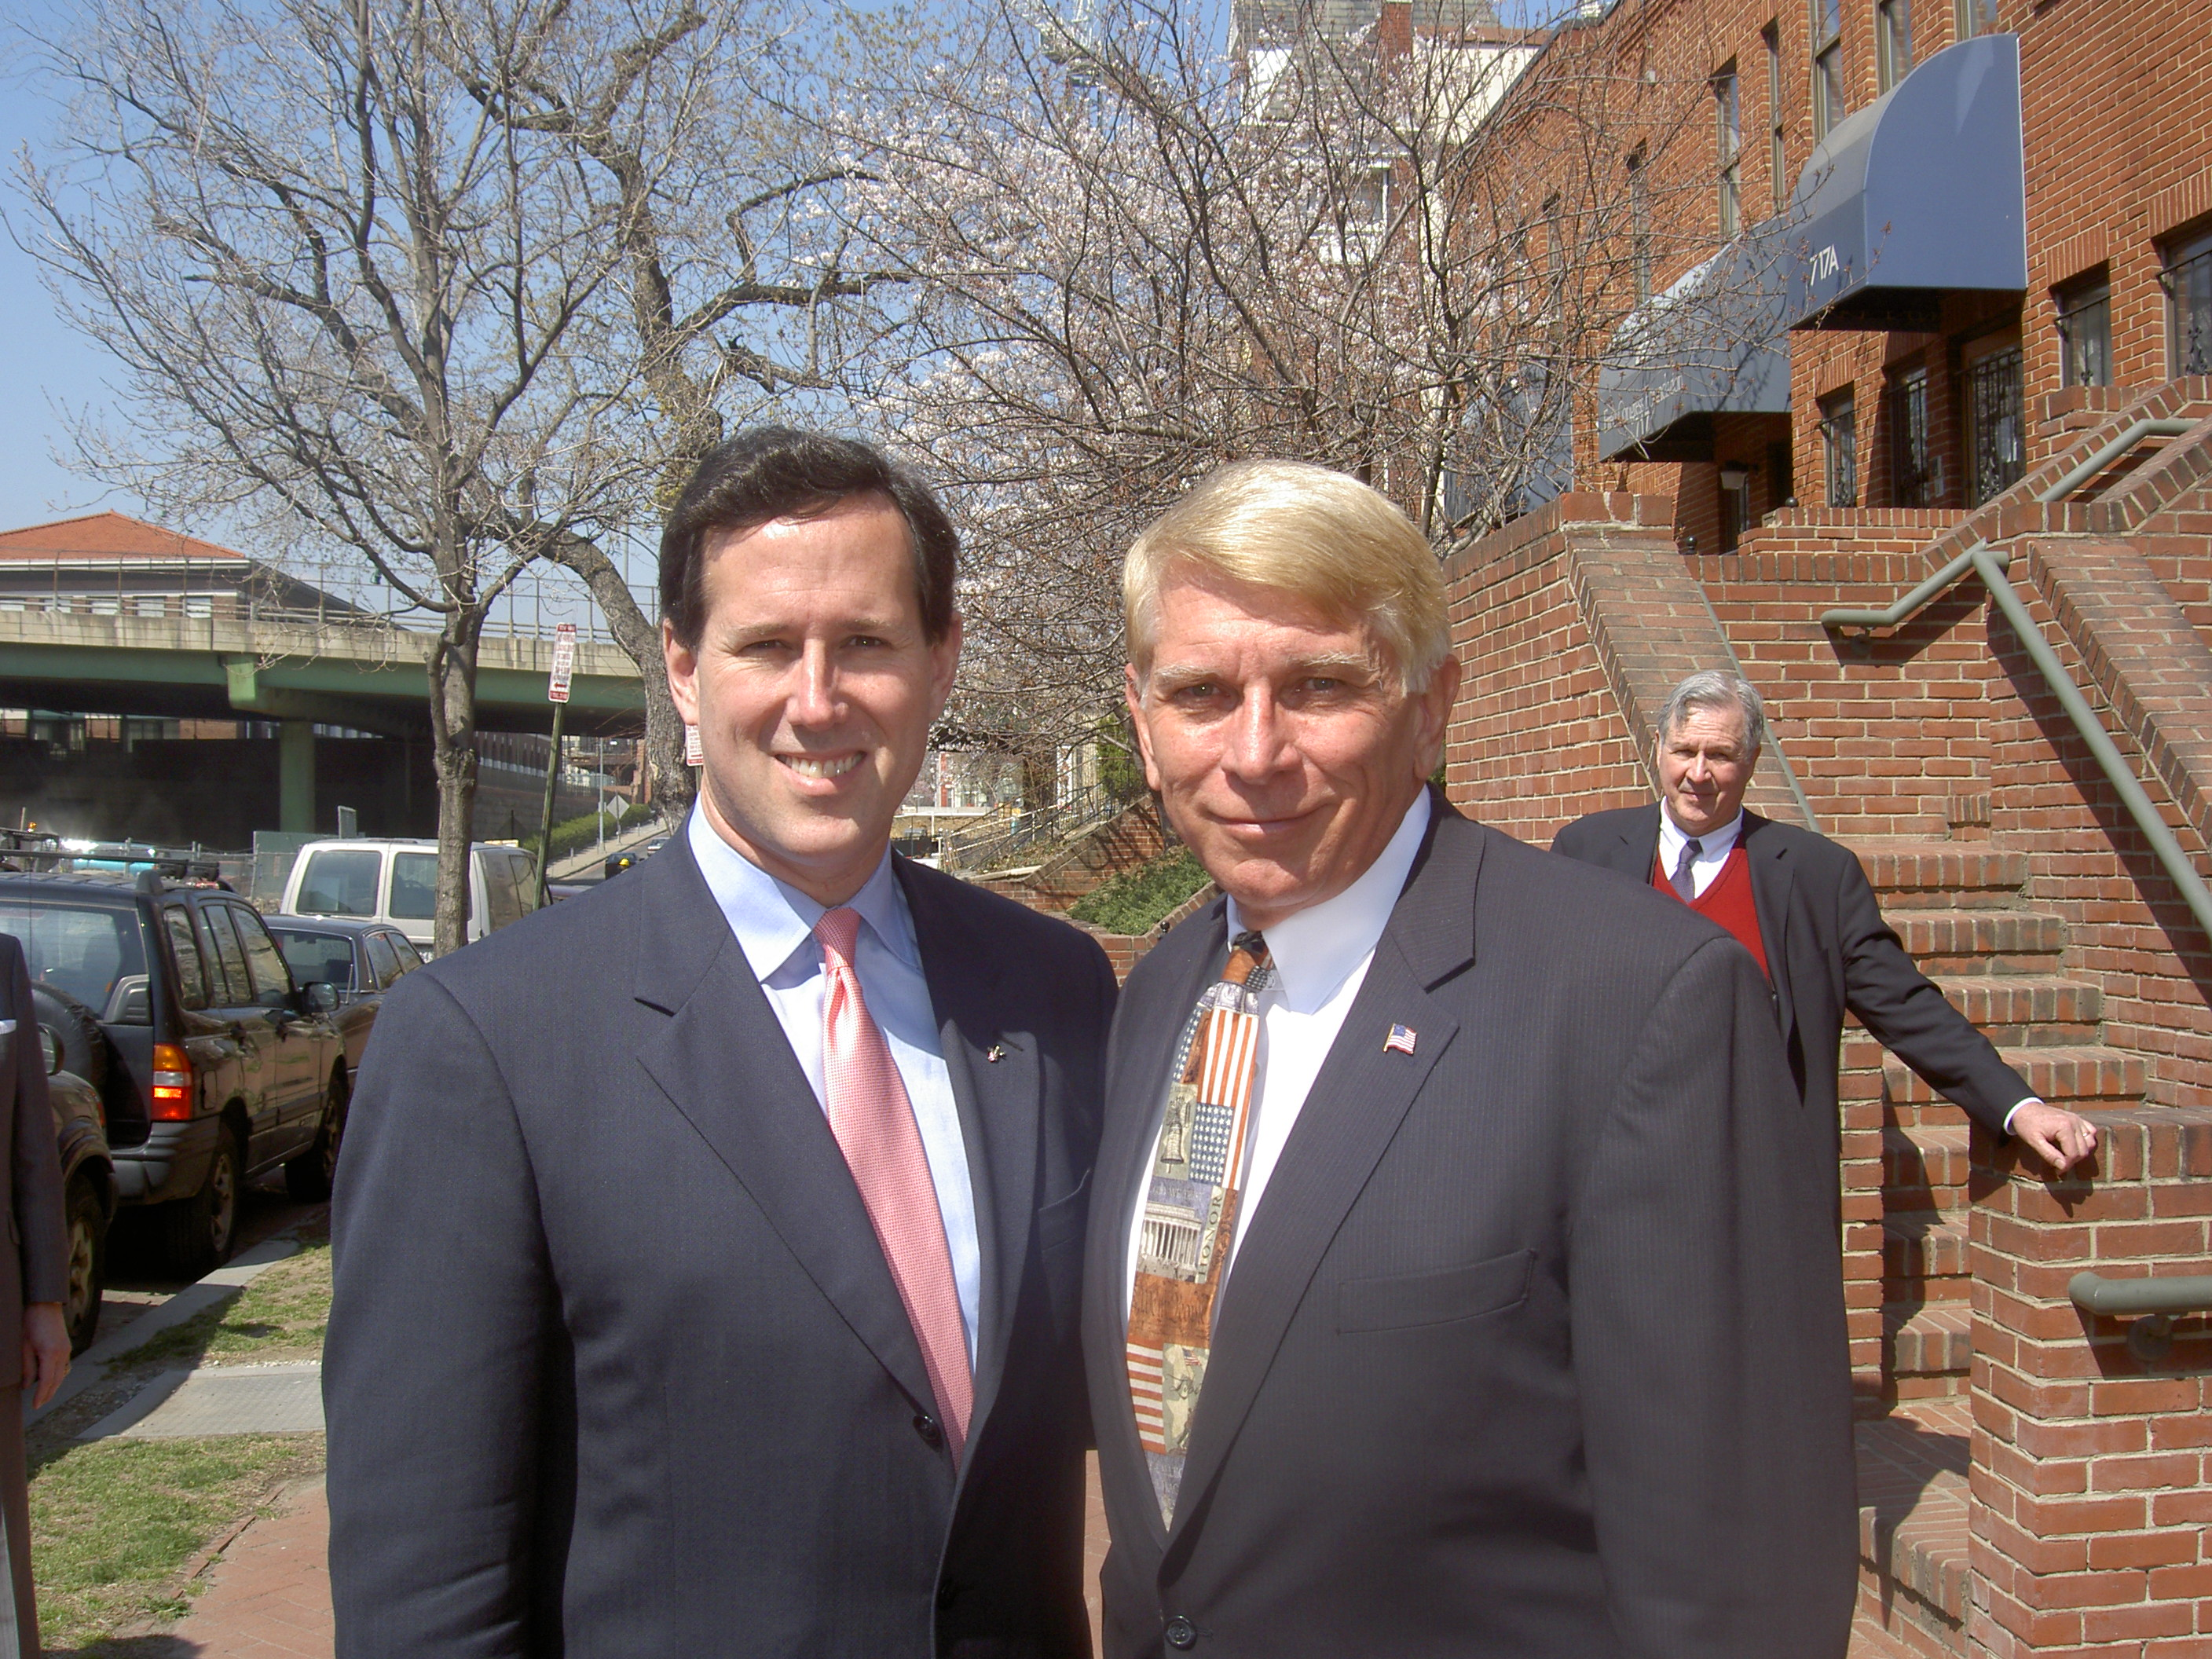 Rick Santorum and William J. Murray